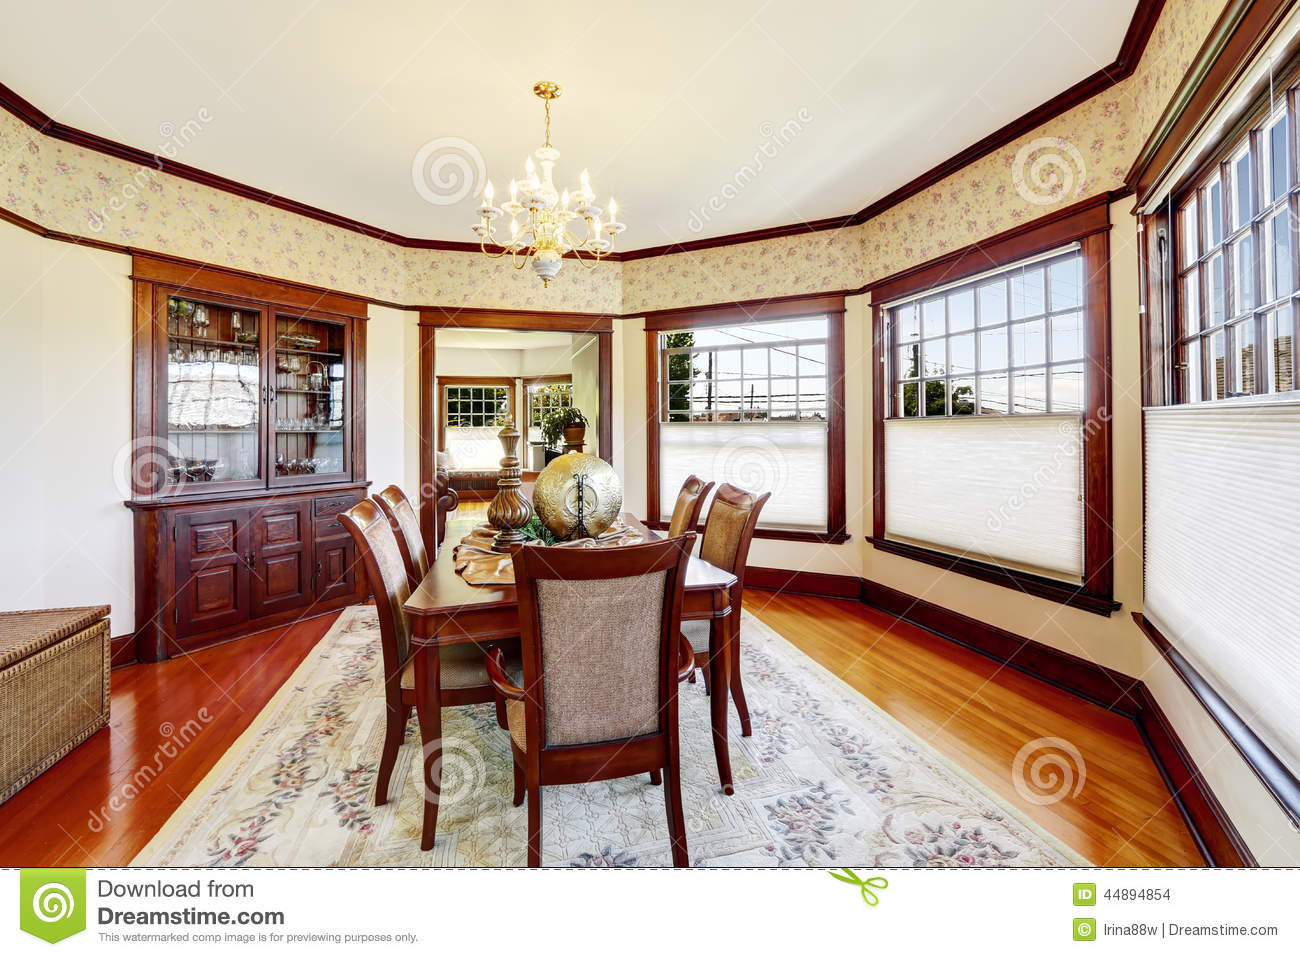 Luxury Dining Room With Wood Trim And Built in Cabinet